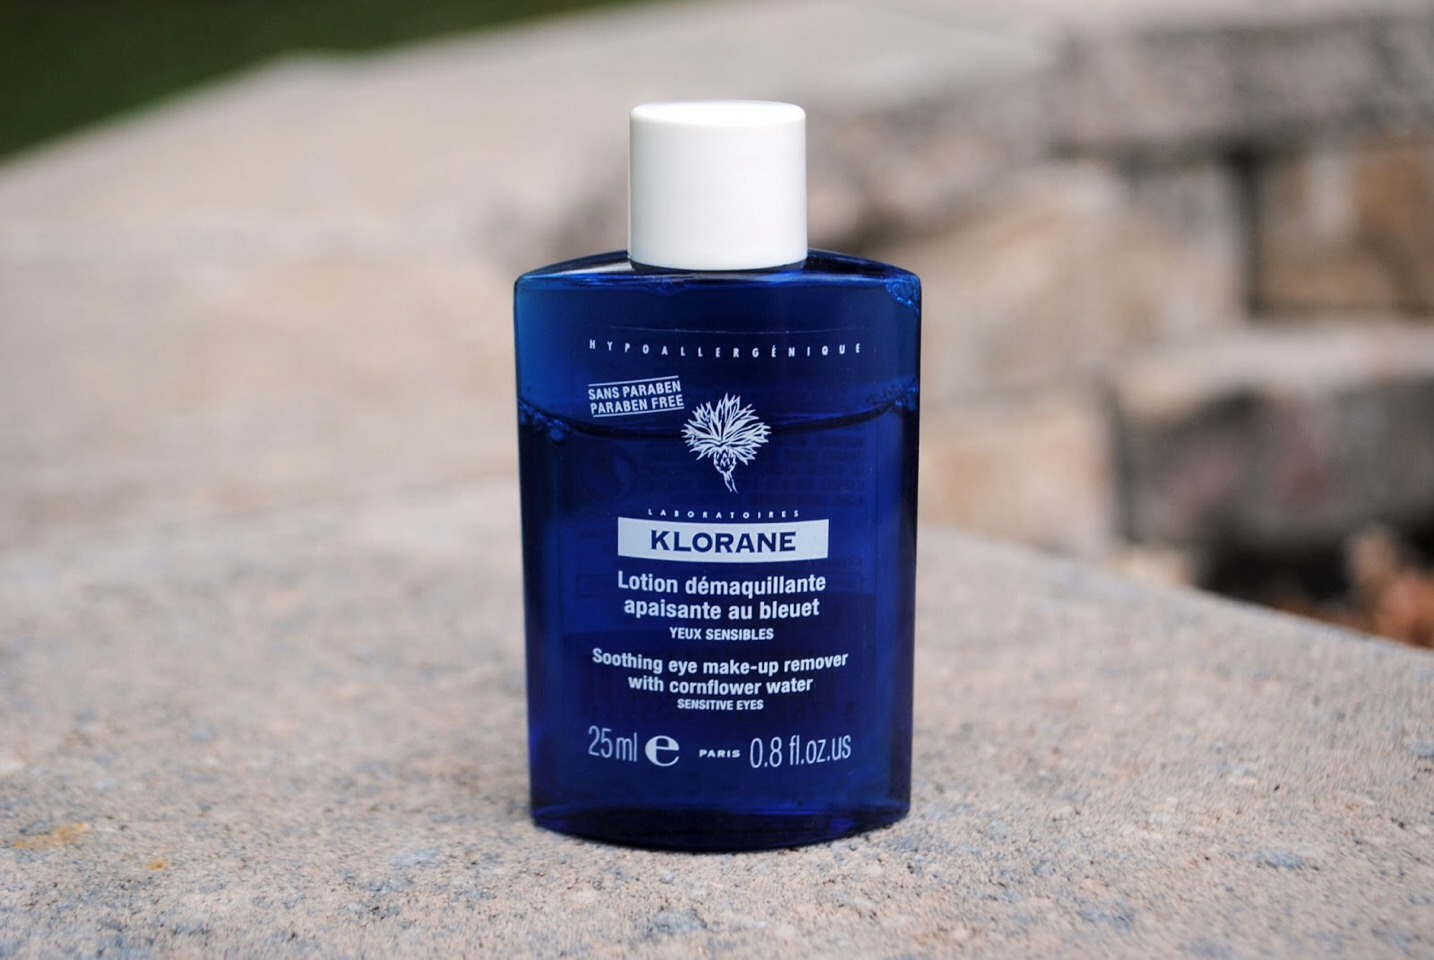 Klorane Soothing Makeup Remover With Cornflower Water $9.00 drugstore.com